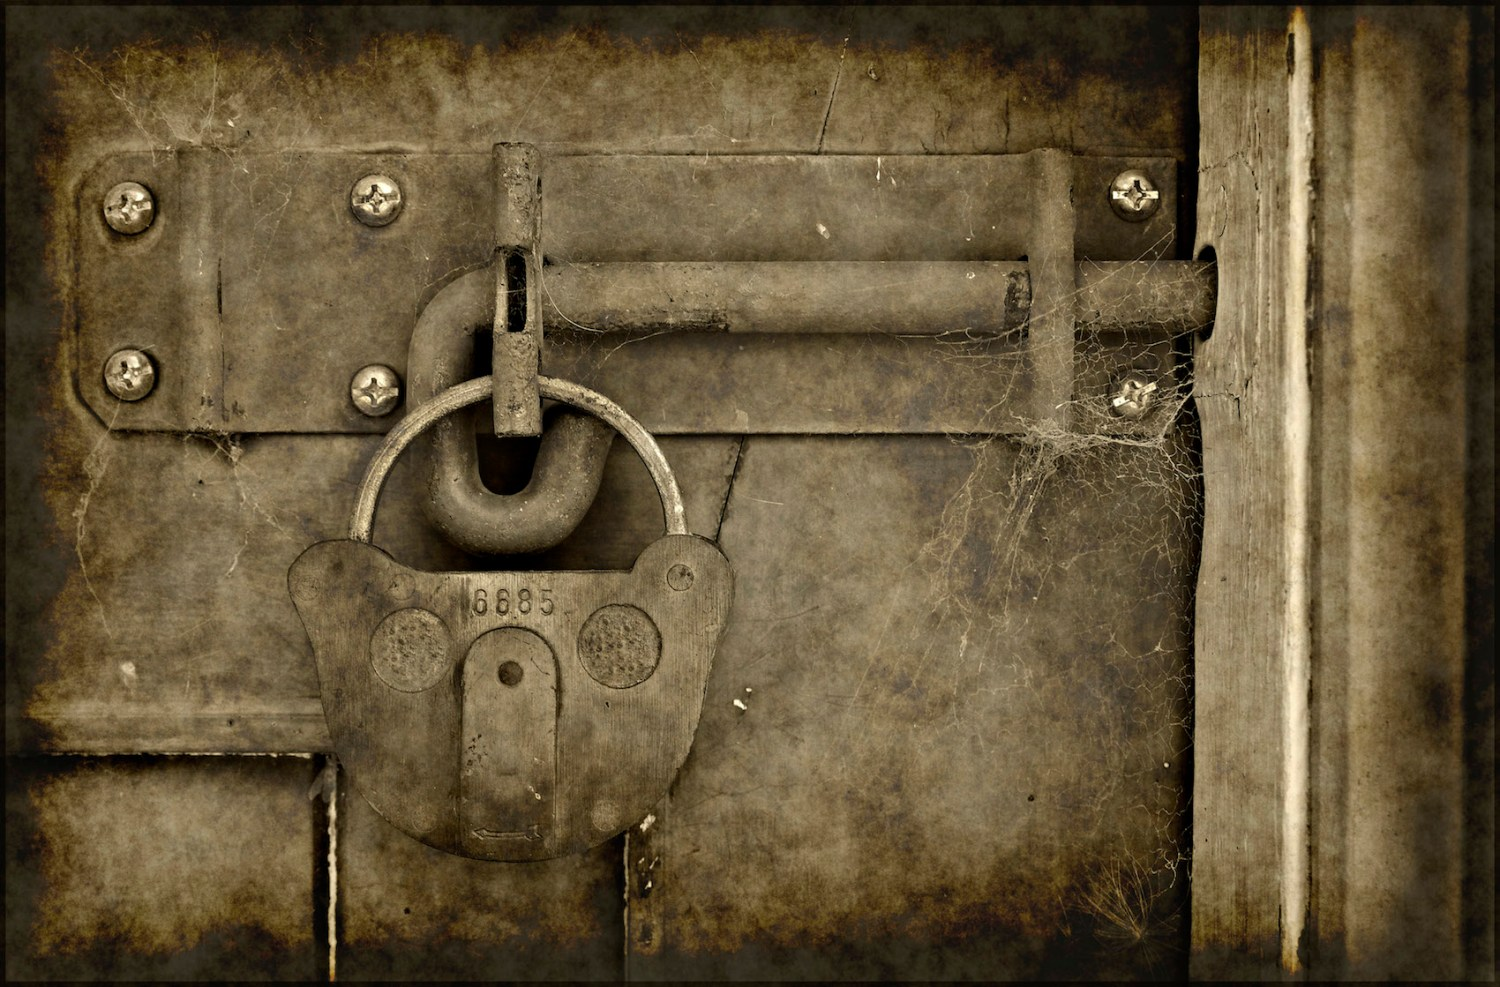 Old vintage grungy lock on a door photo | www.myfreetextures.com